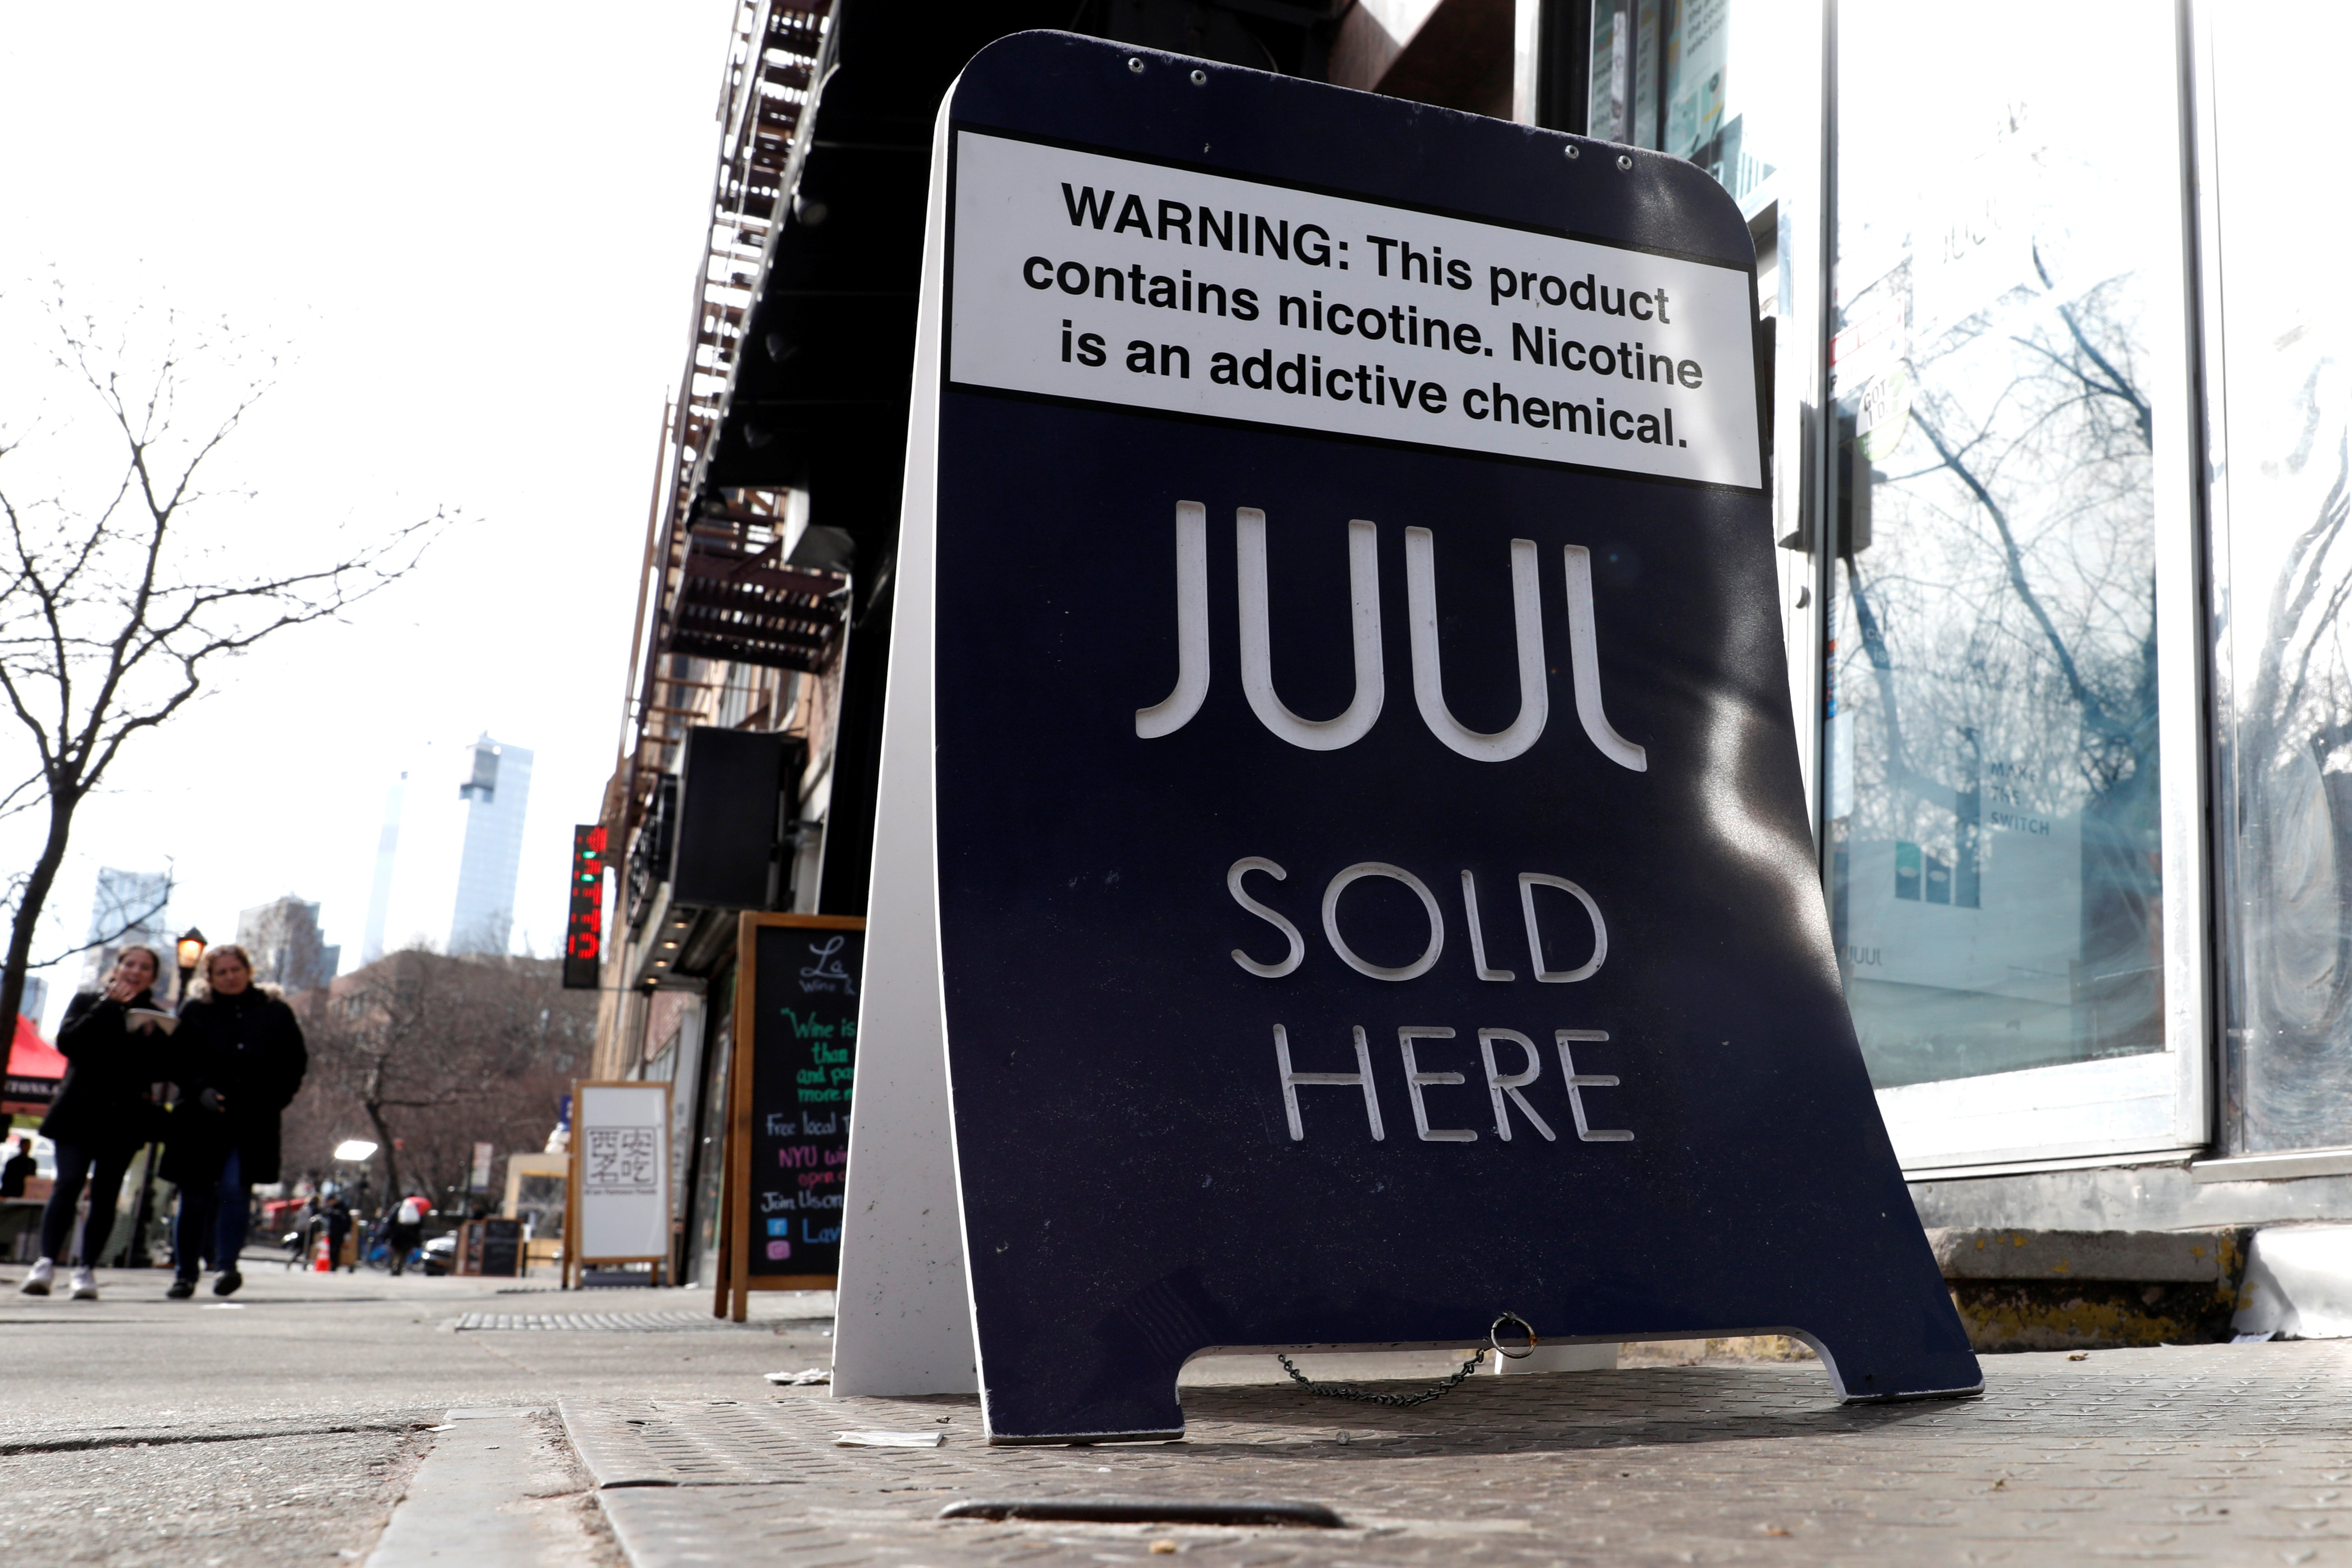 A sign advertising Juul brand vaping products is seen outside a shop in Manhattan in New York City, New York, U.S., February 6, 2019. REUTERS/Mike Segar